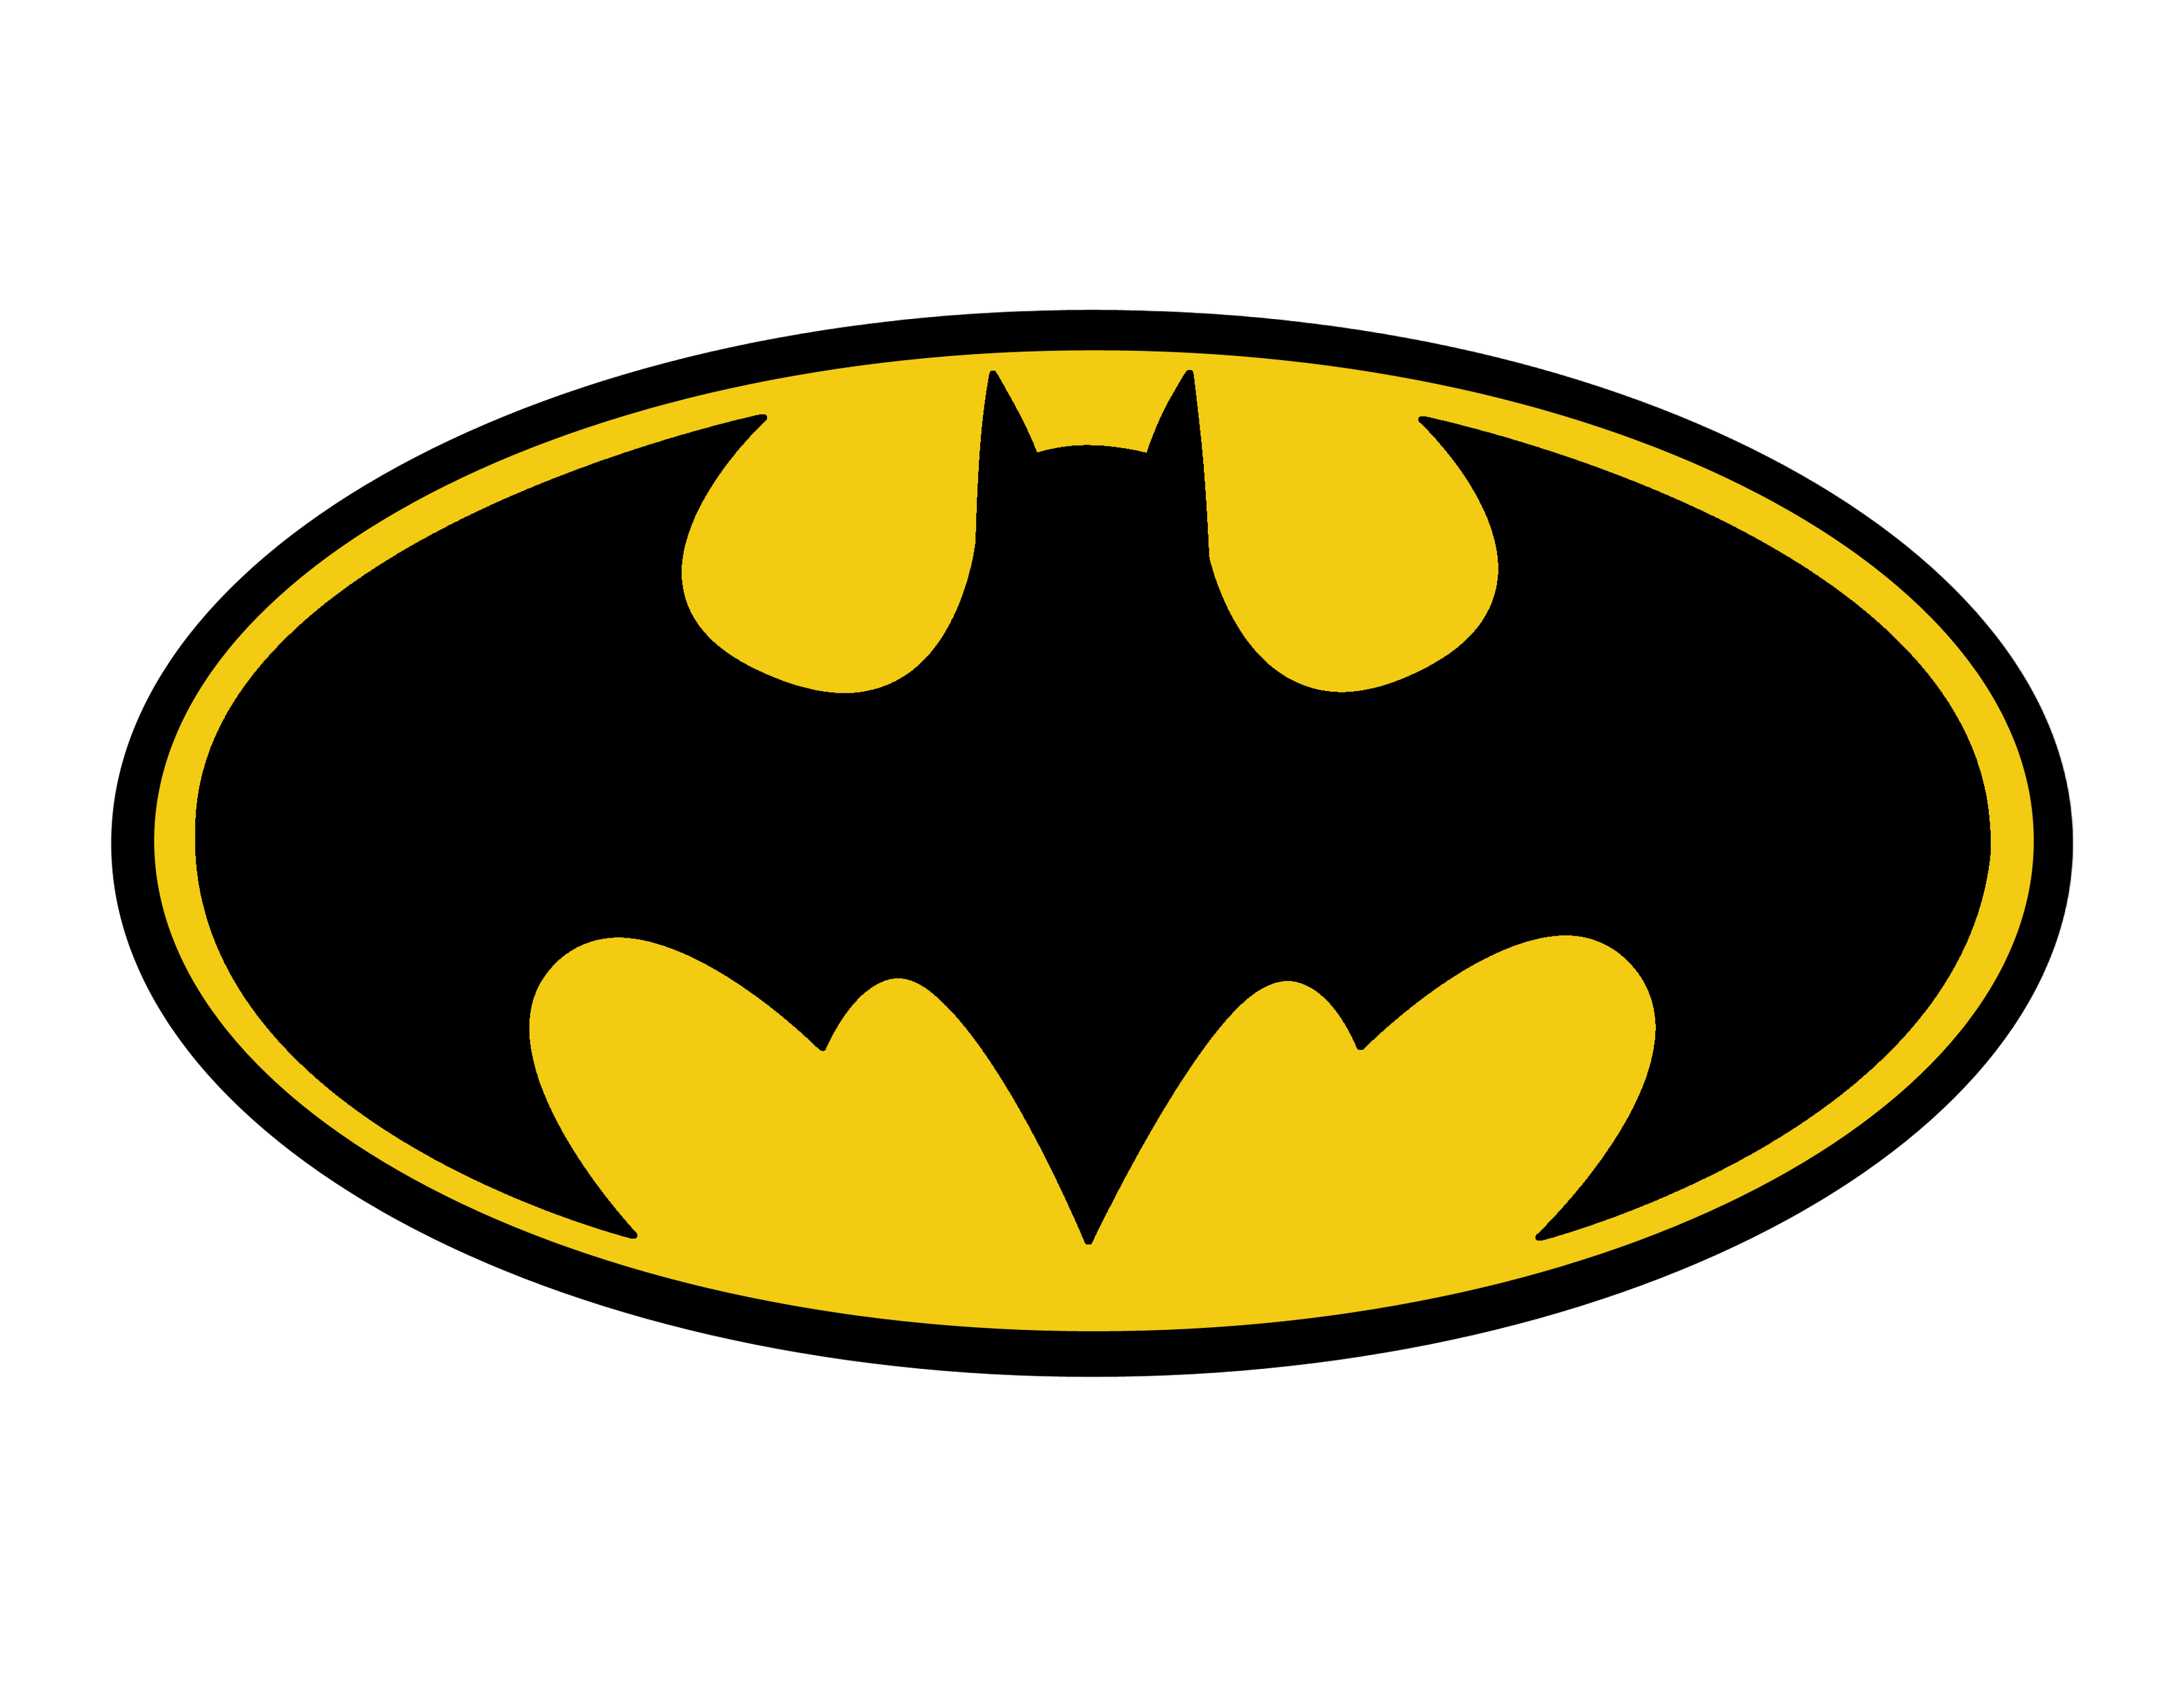 Batman logo vector batman logo tattoo batman stickers logo sticker leather carving